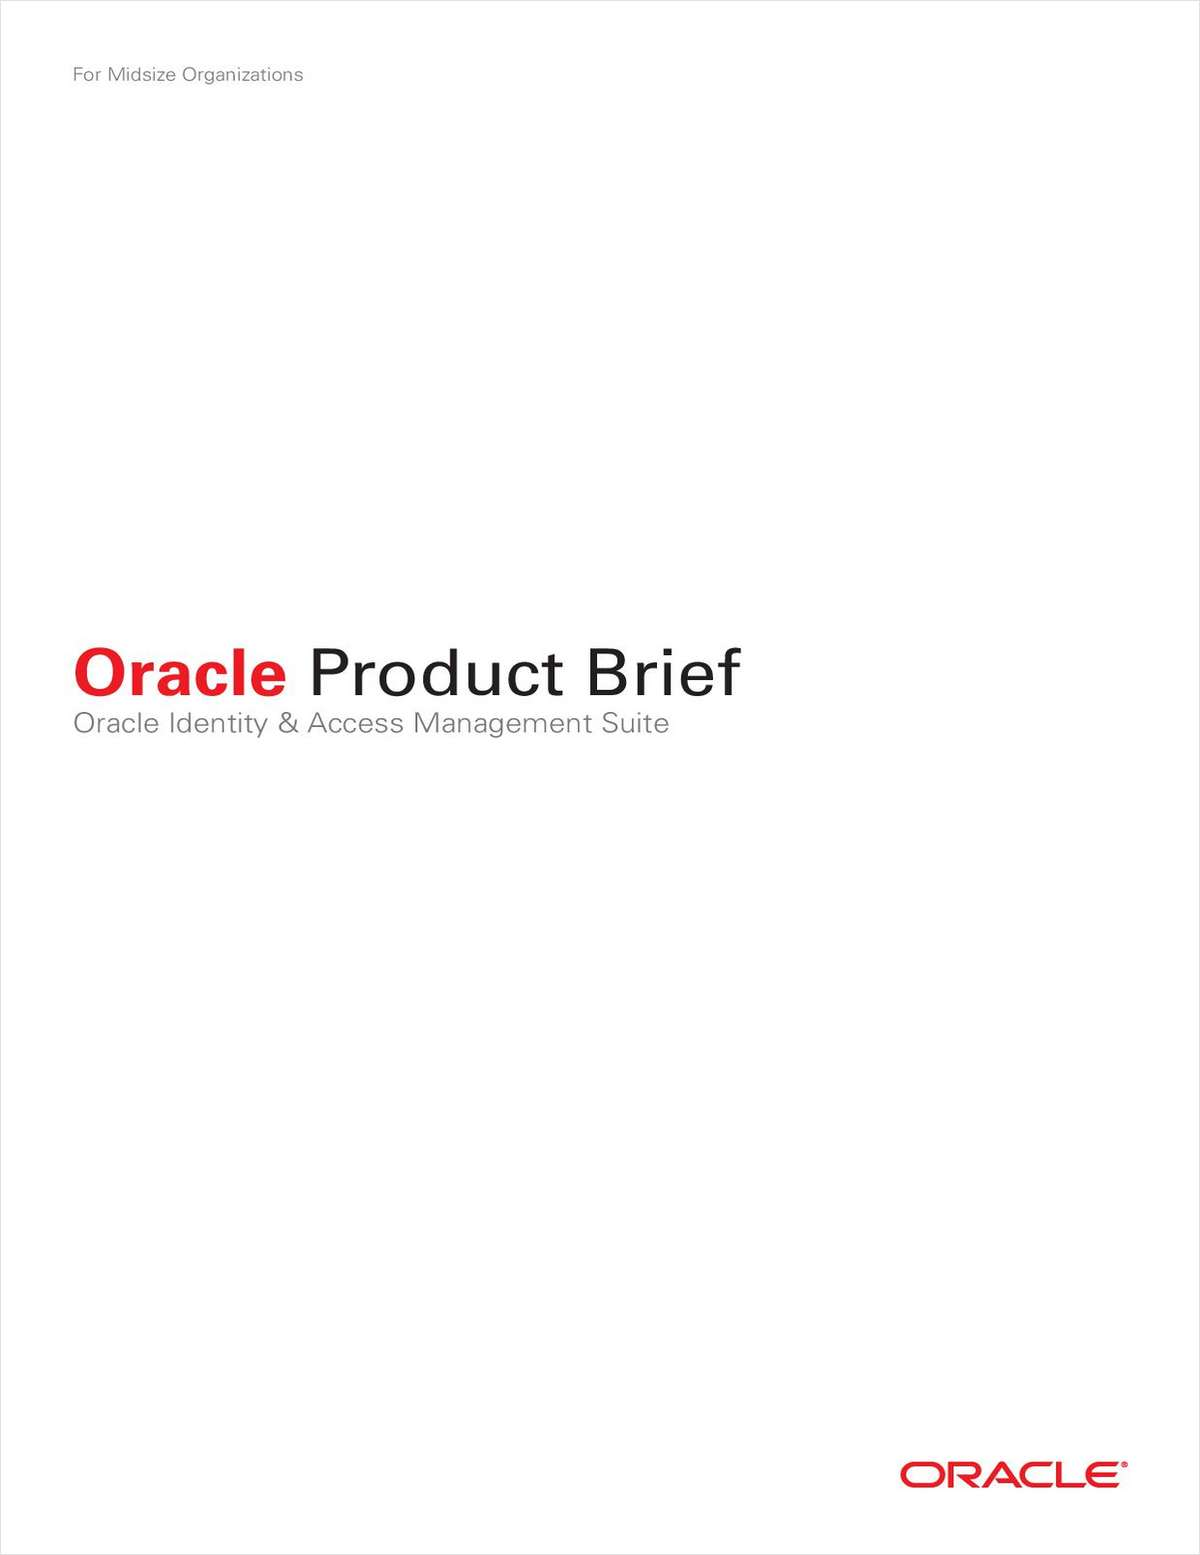 Oracle Product Brief: Oracle Identity & Access Management Suite & Oracle Database Security